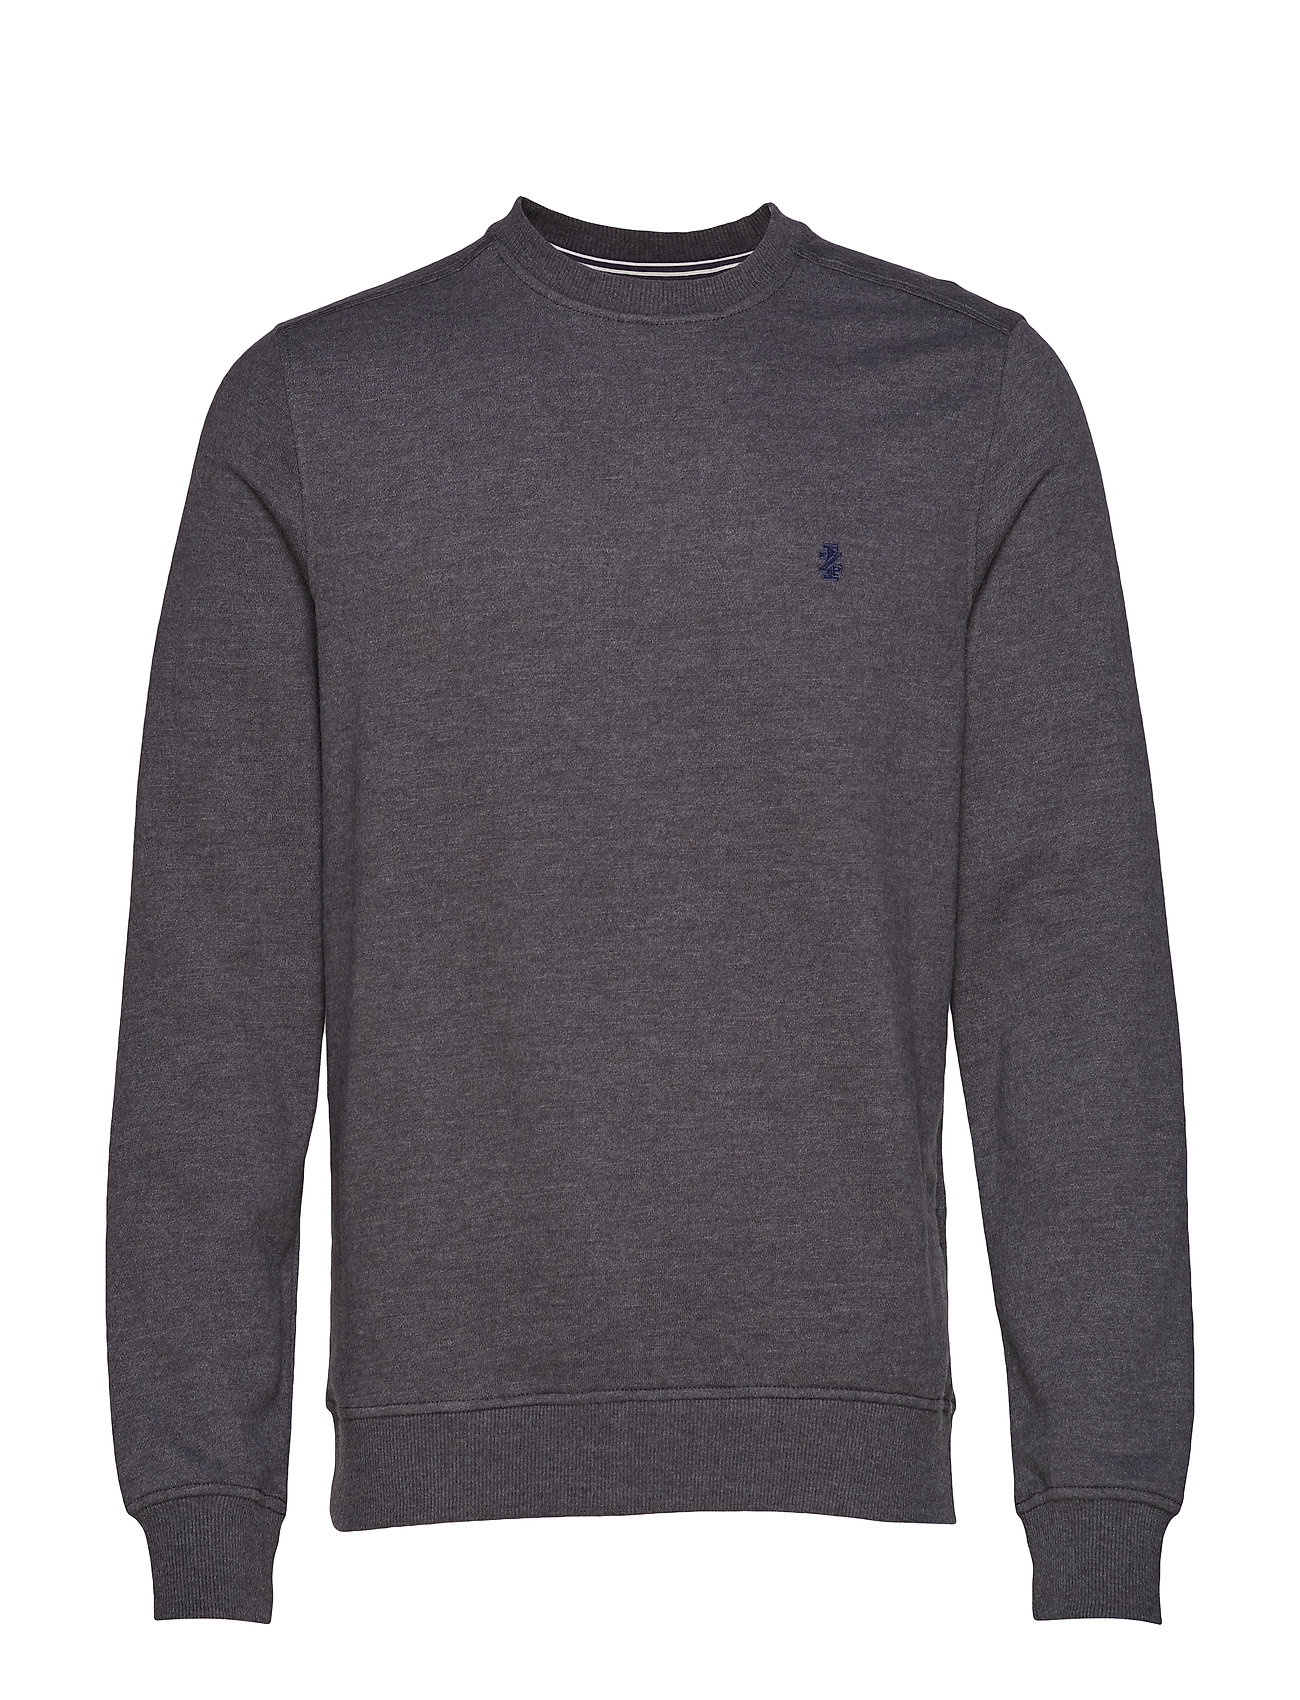 IZOD SUPER SOFT SOLID FLEECE CREW - ASPHALT